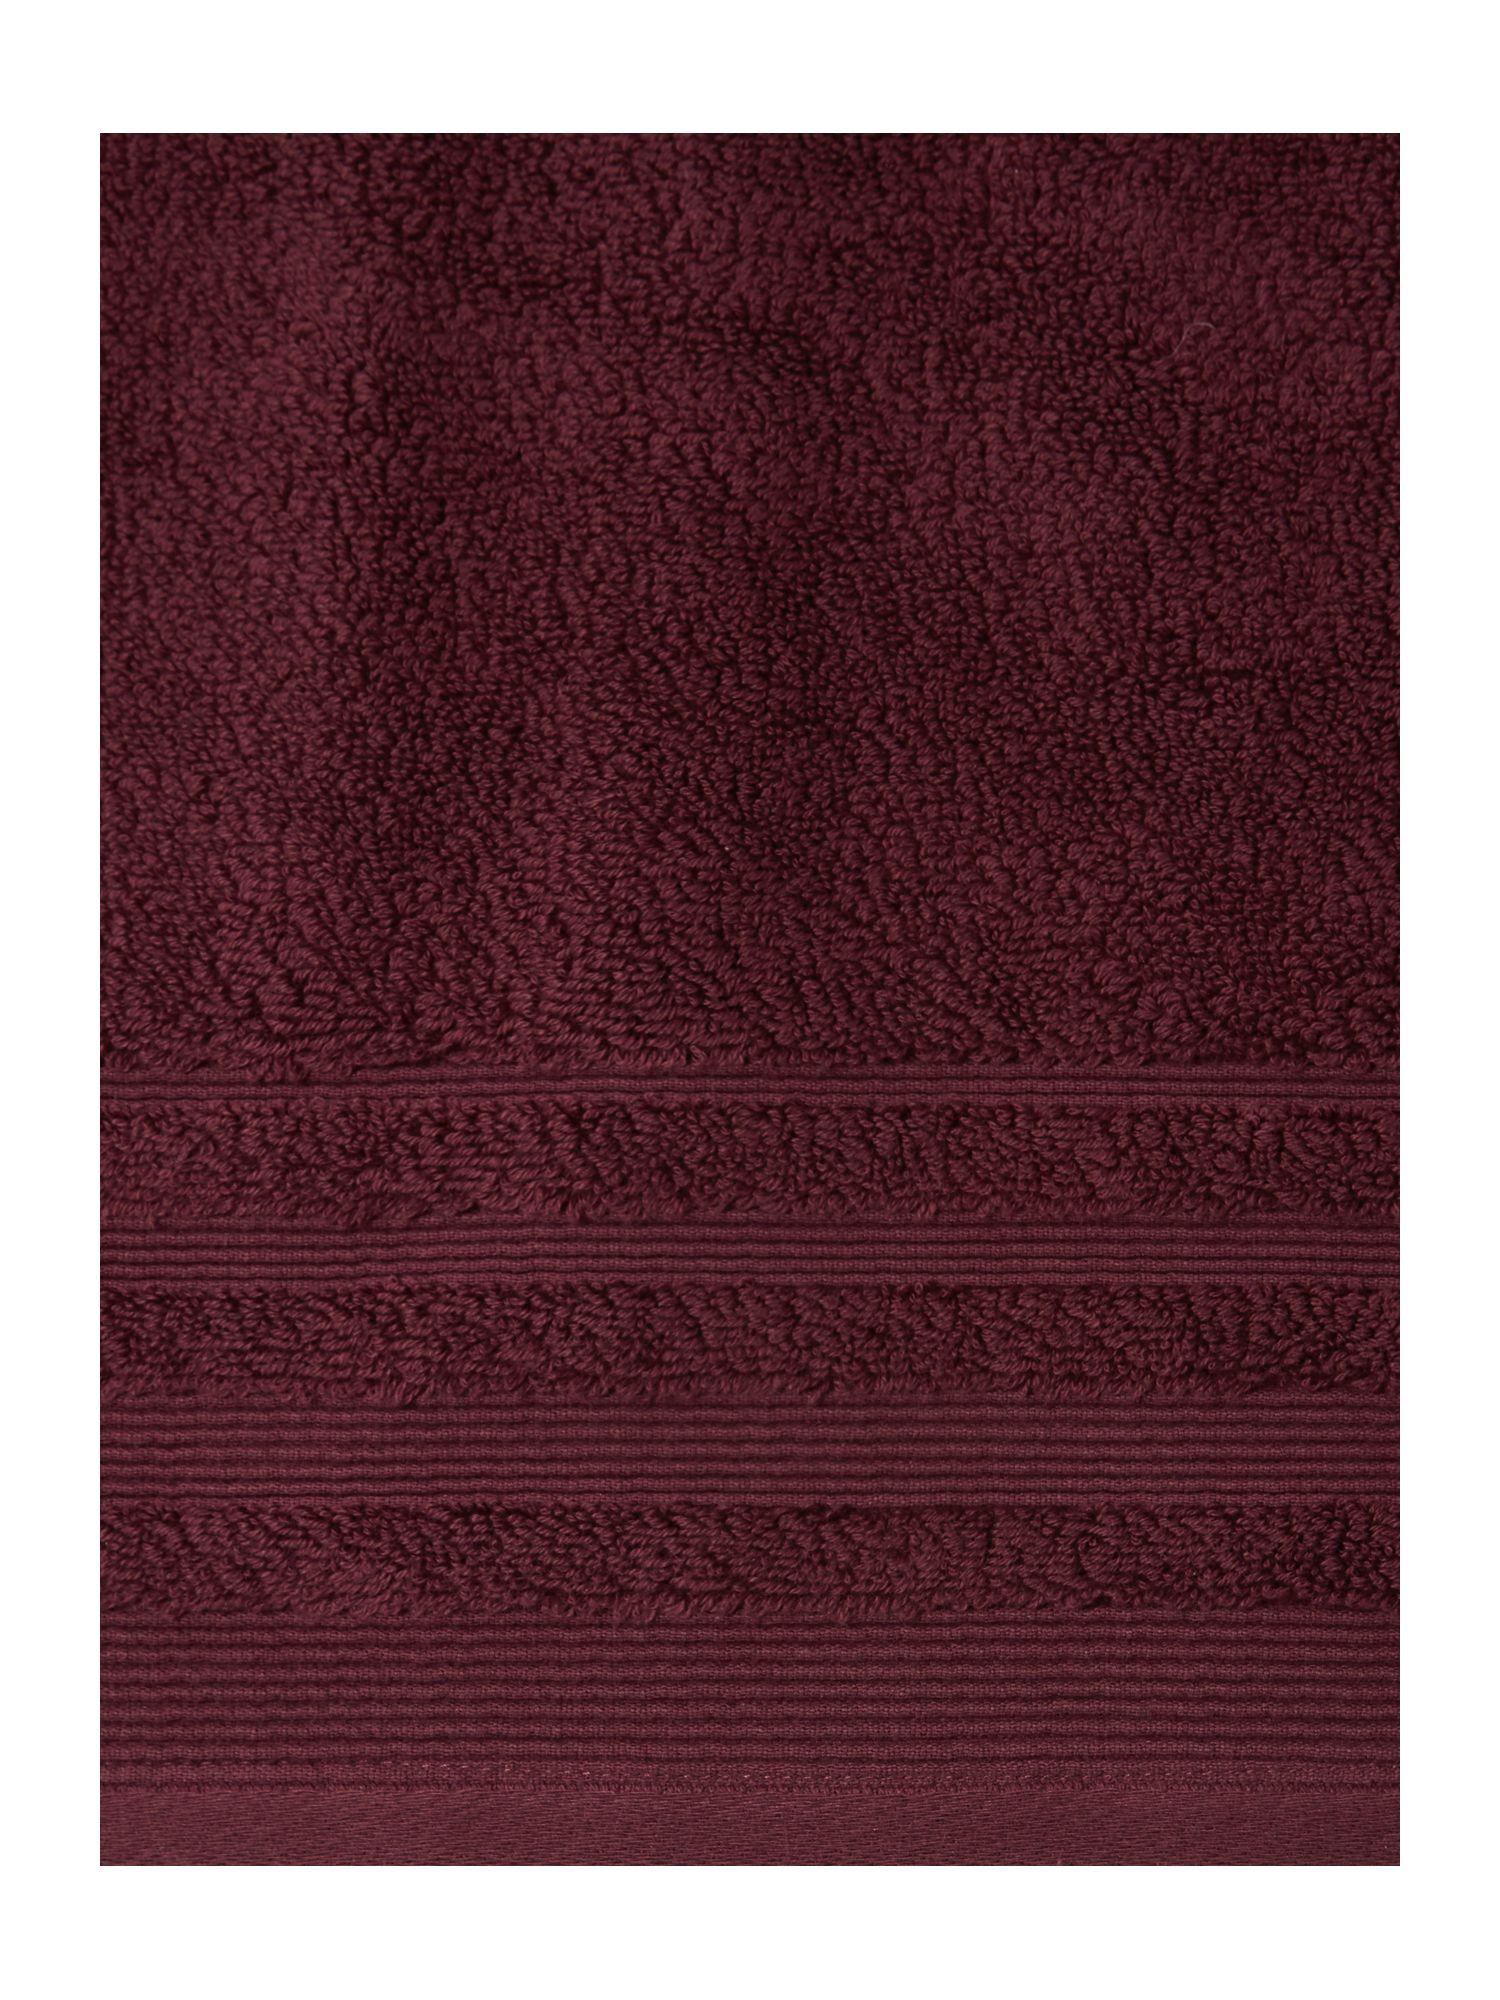 Classic luxury towels